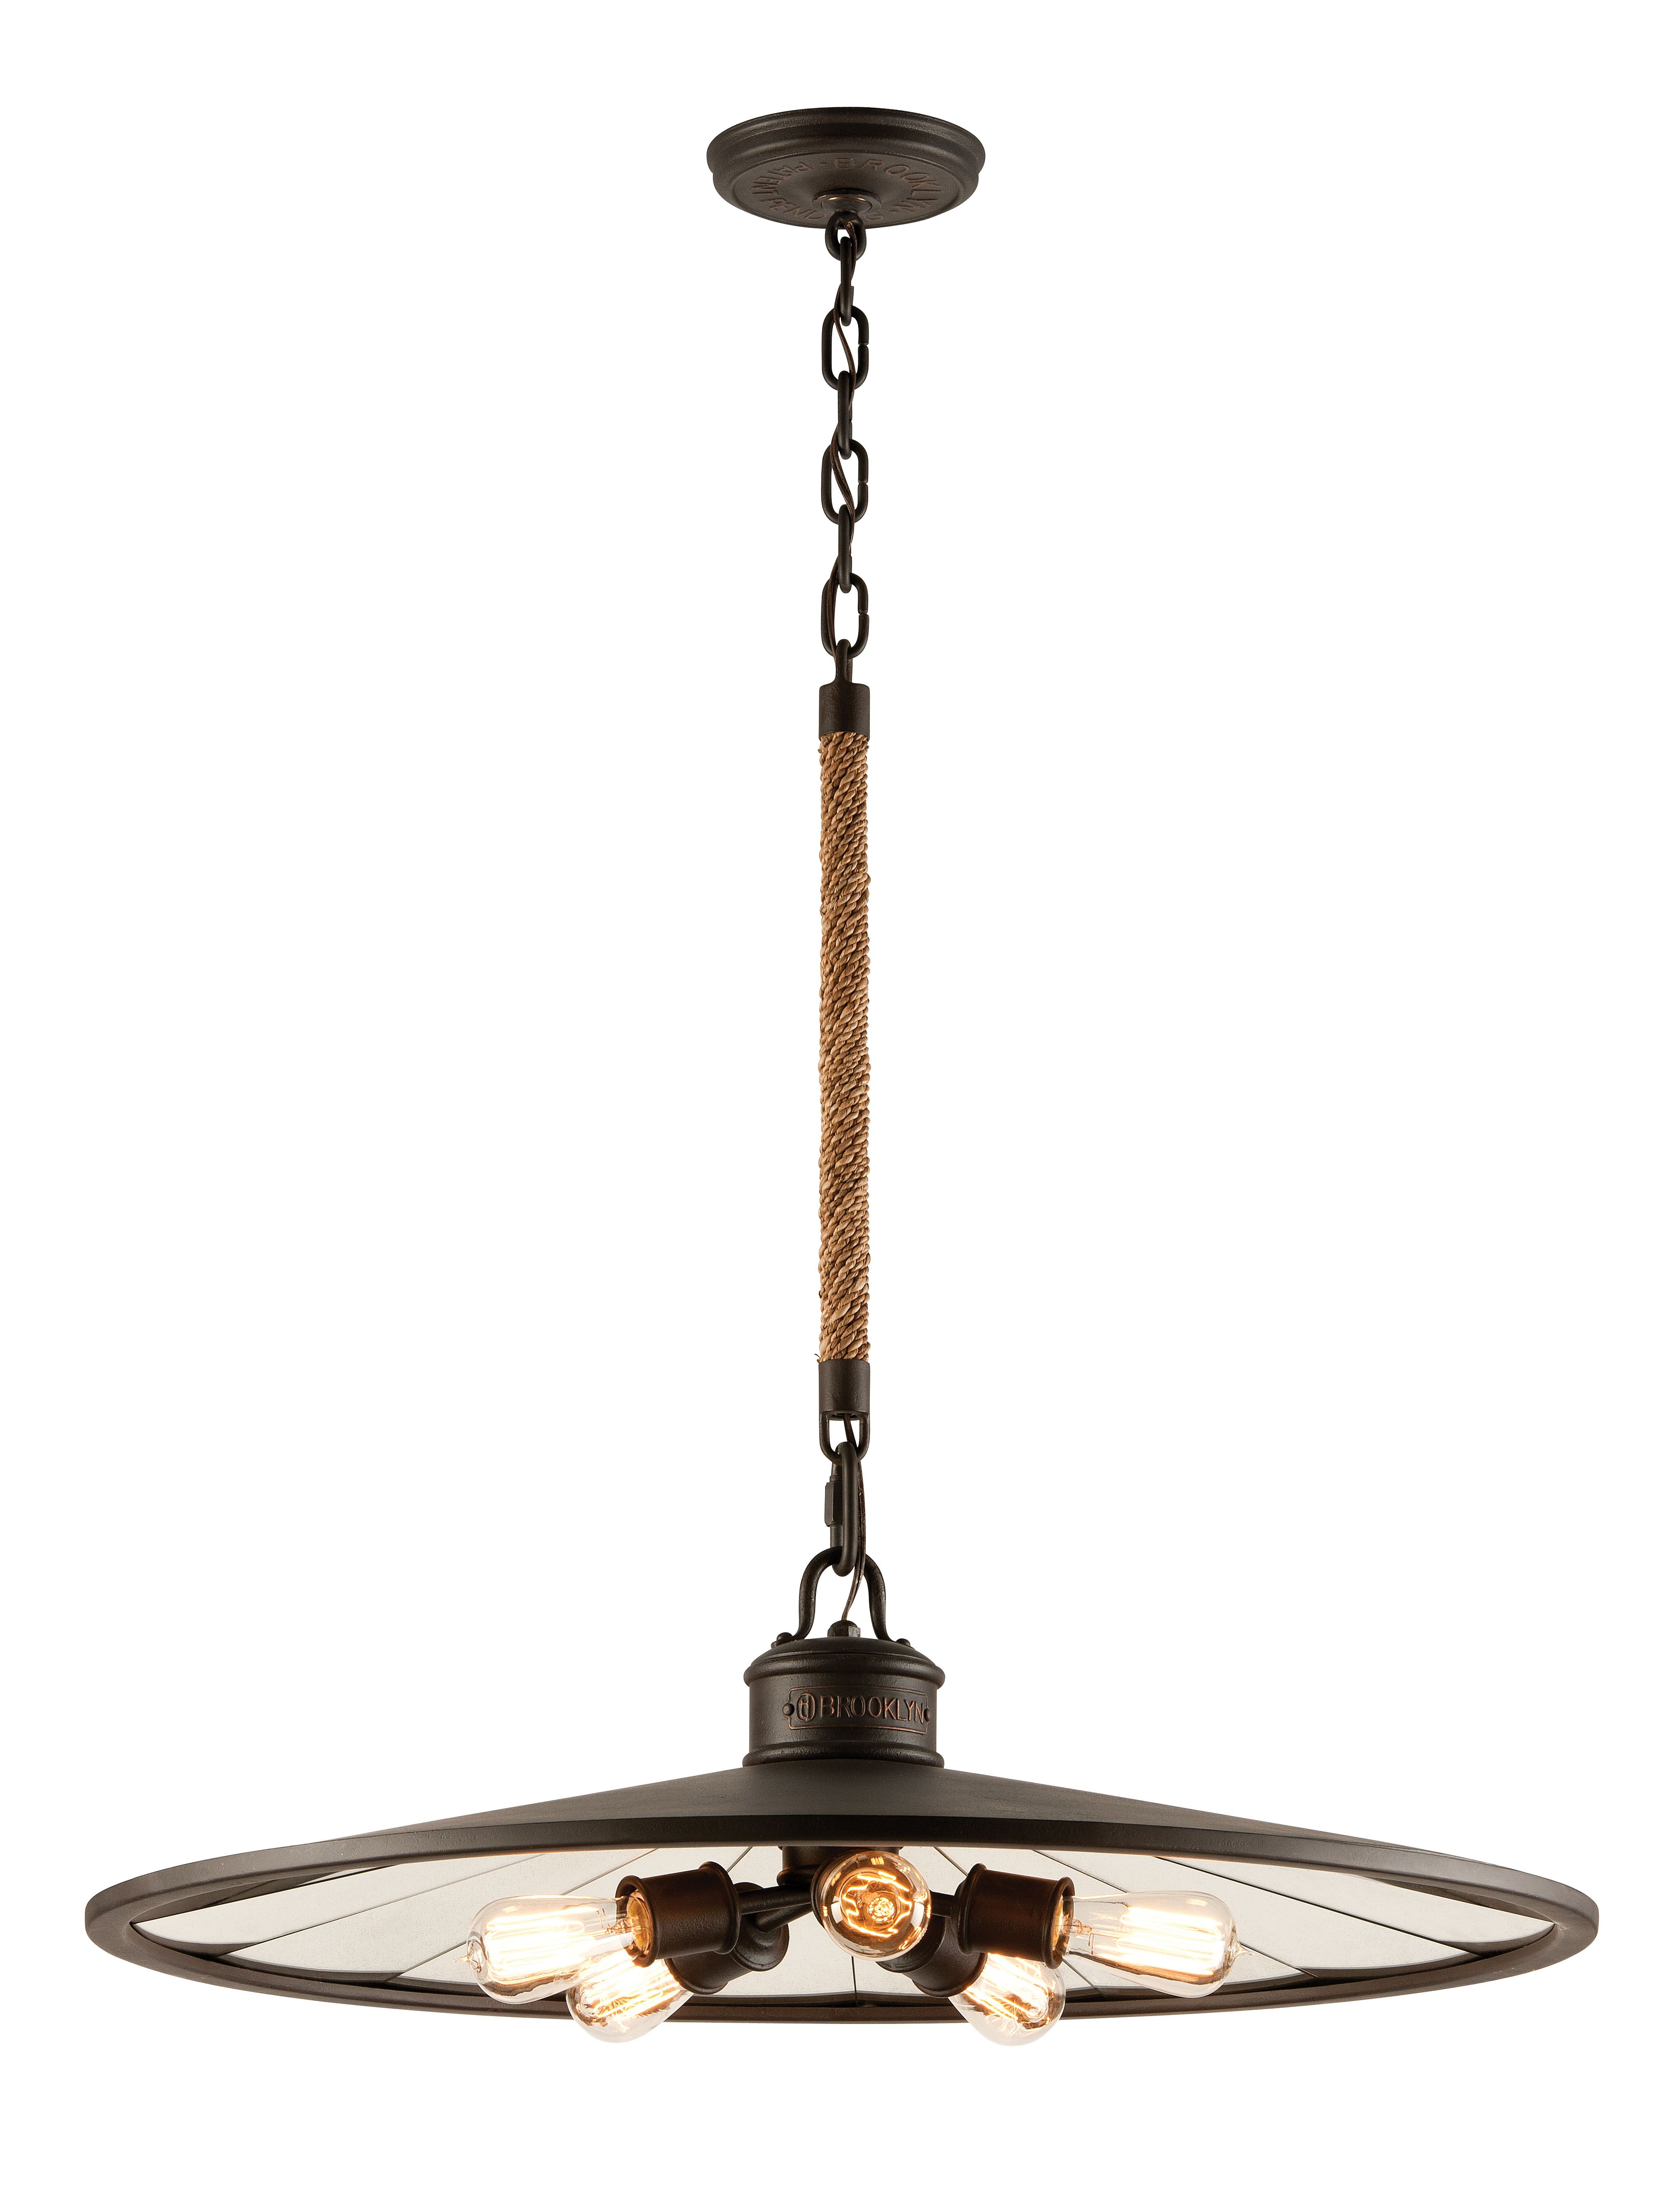 Brooklyn by Troy Lighting Available at Mayer Lighting Showroom